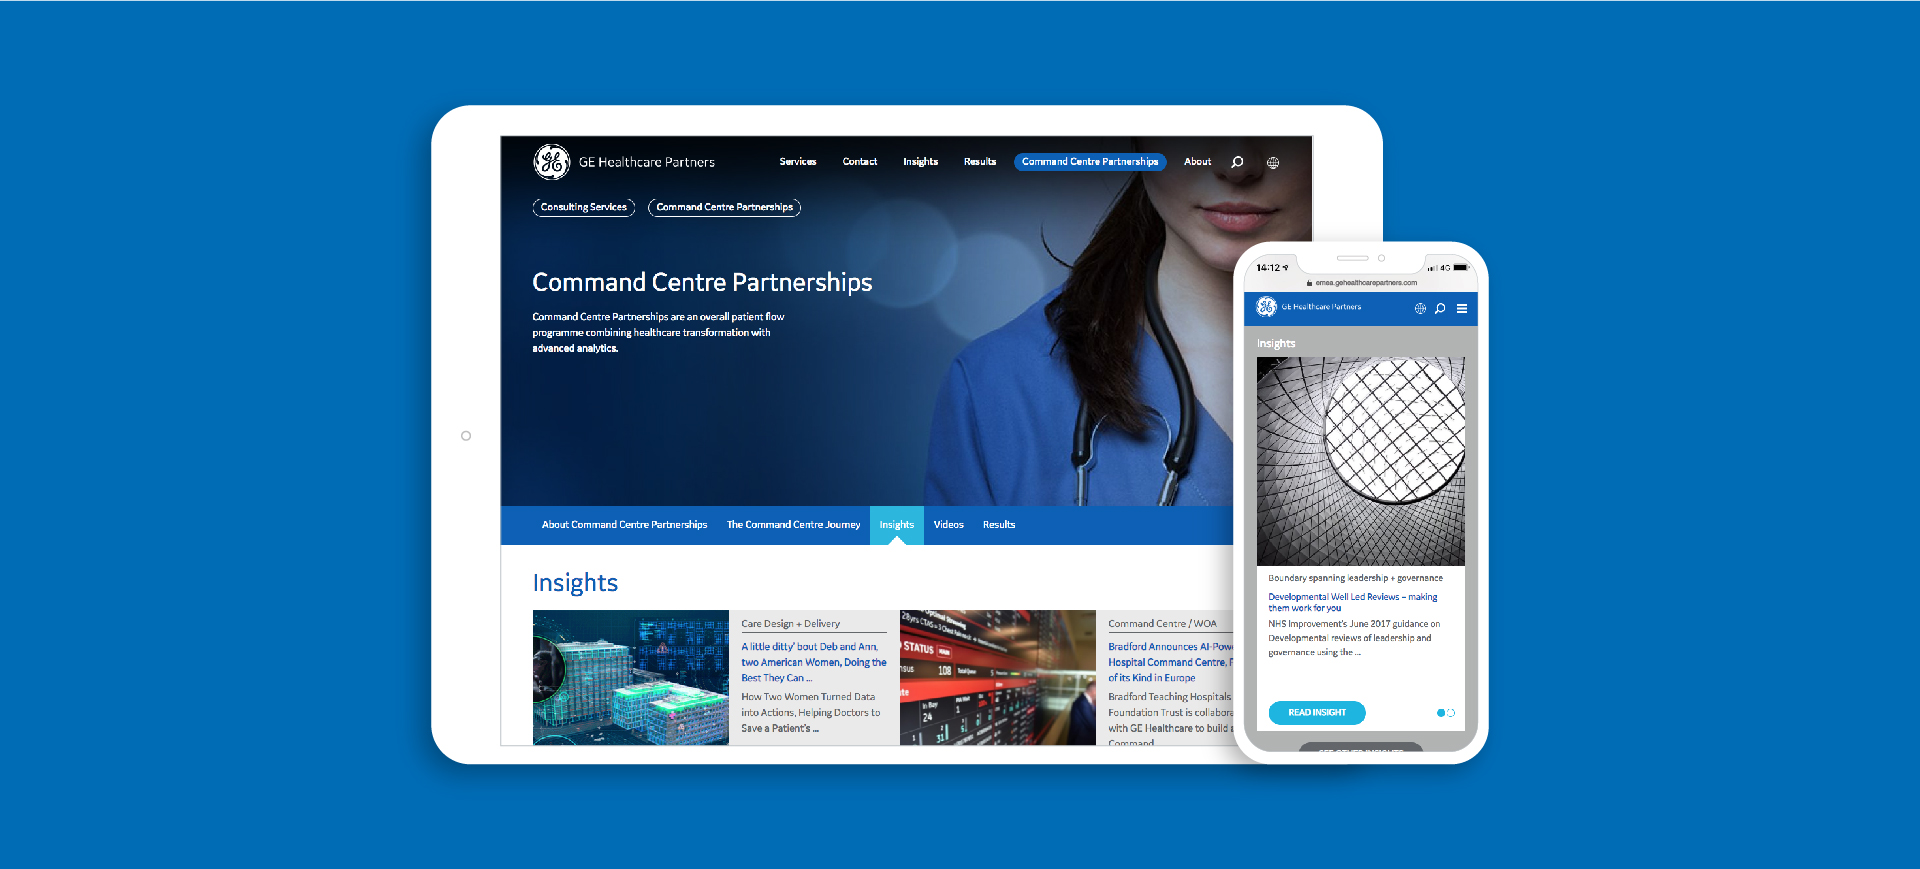 GE Healthcare Finamore website